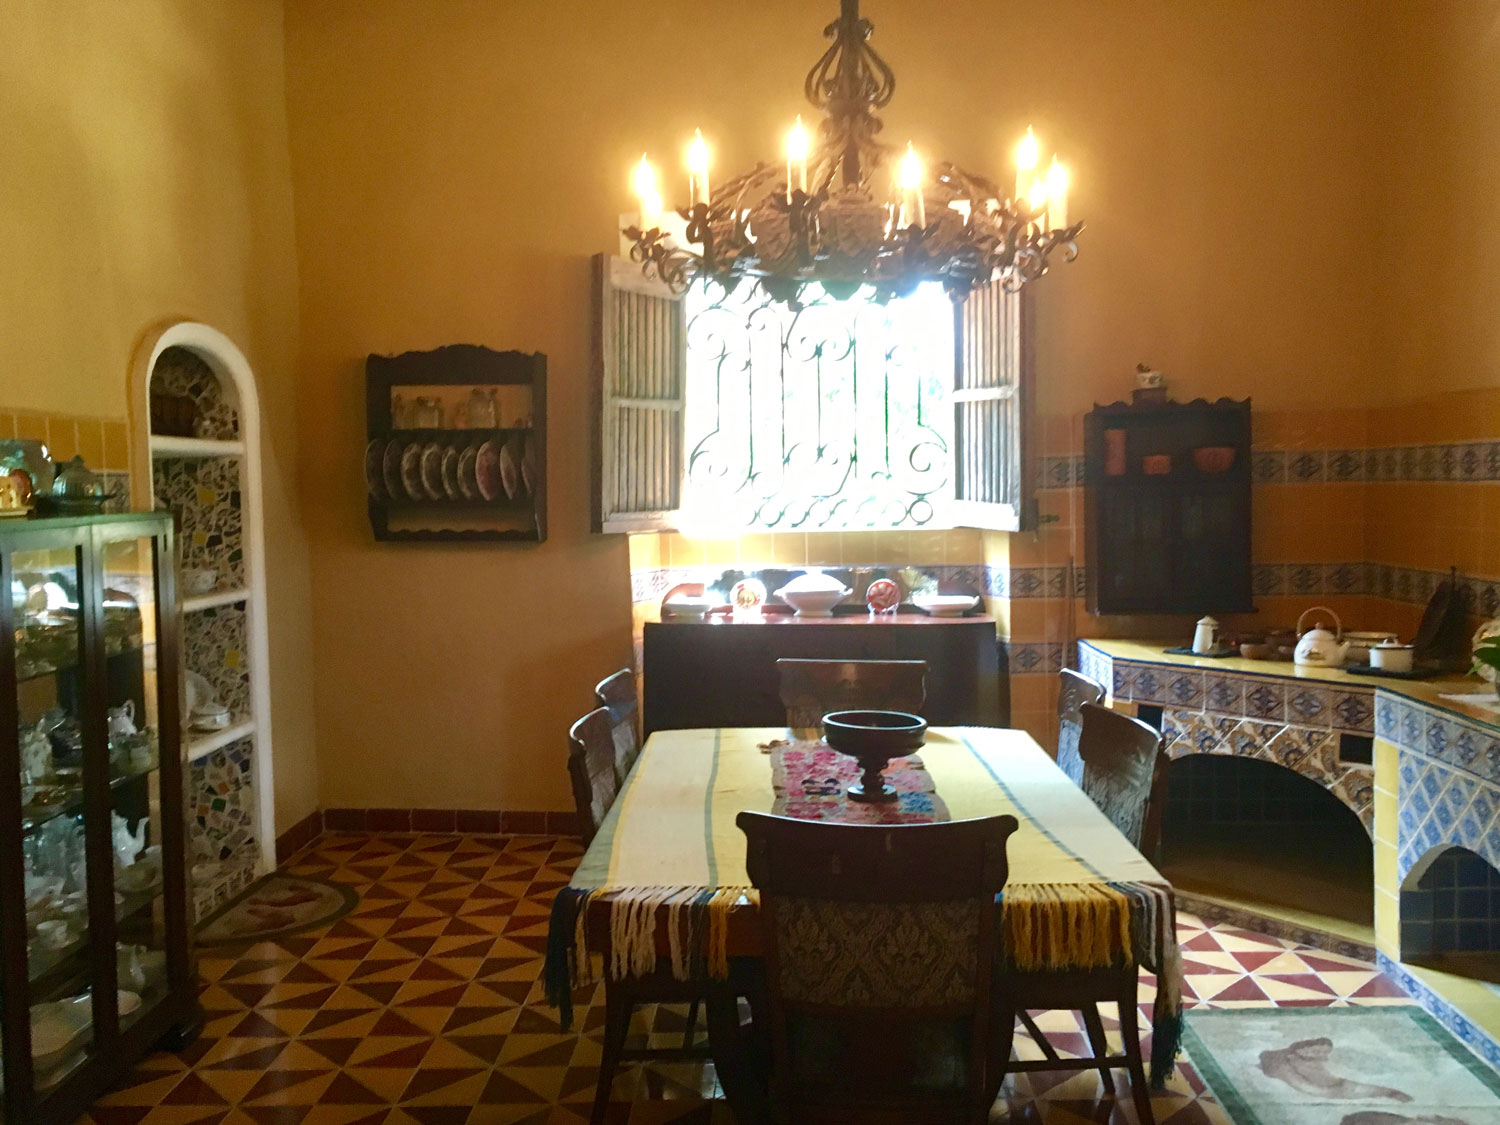 Period kitchen in the main house.